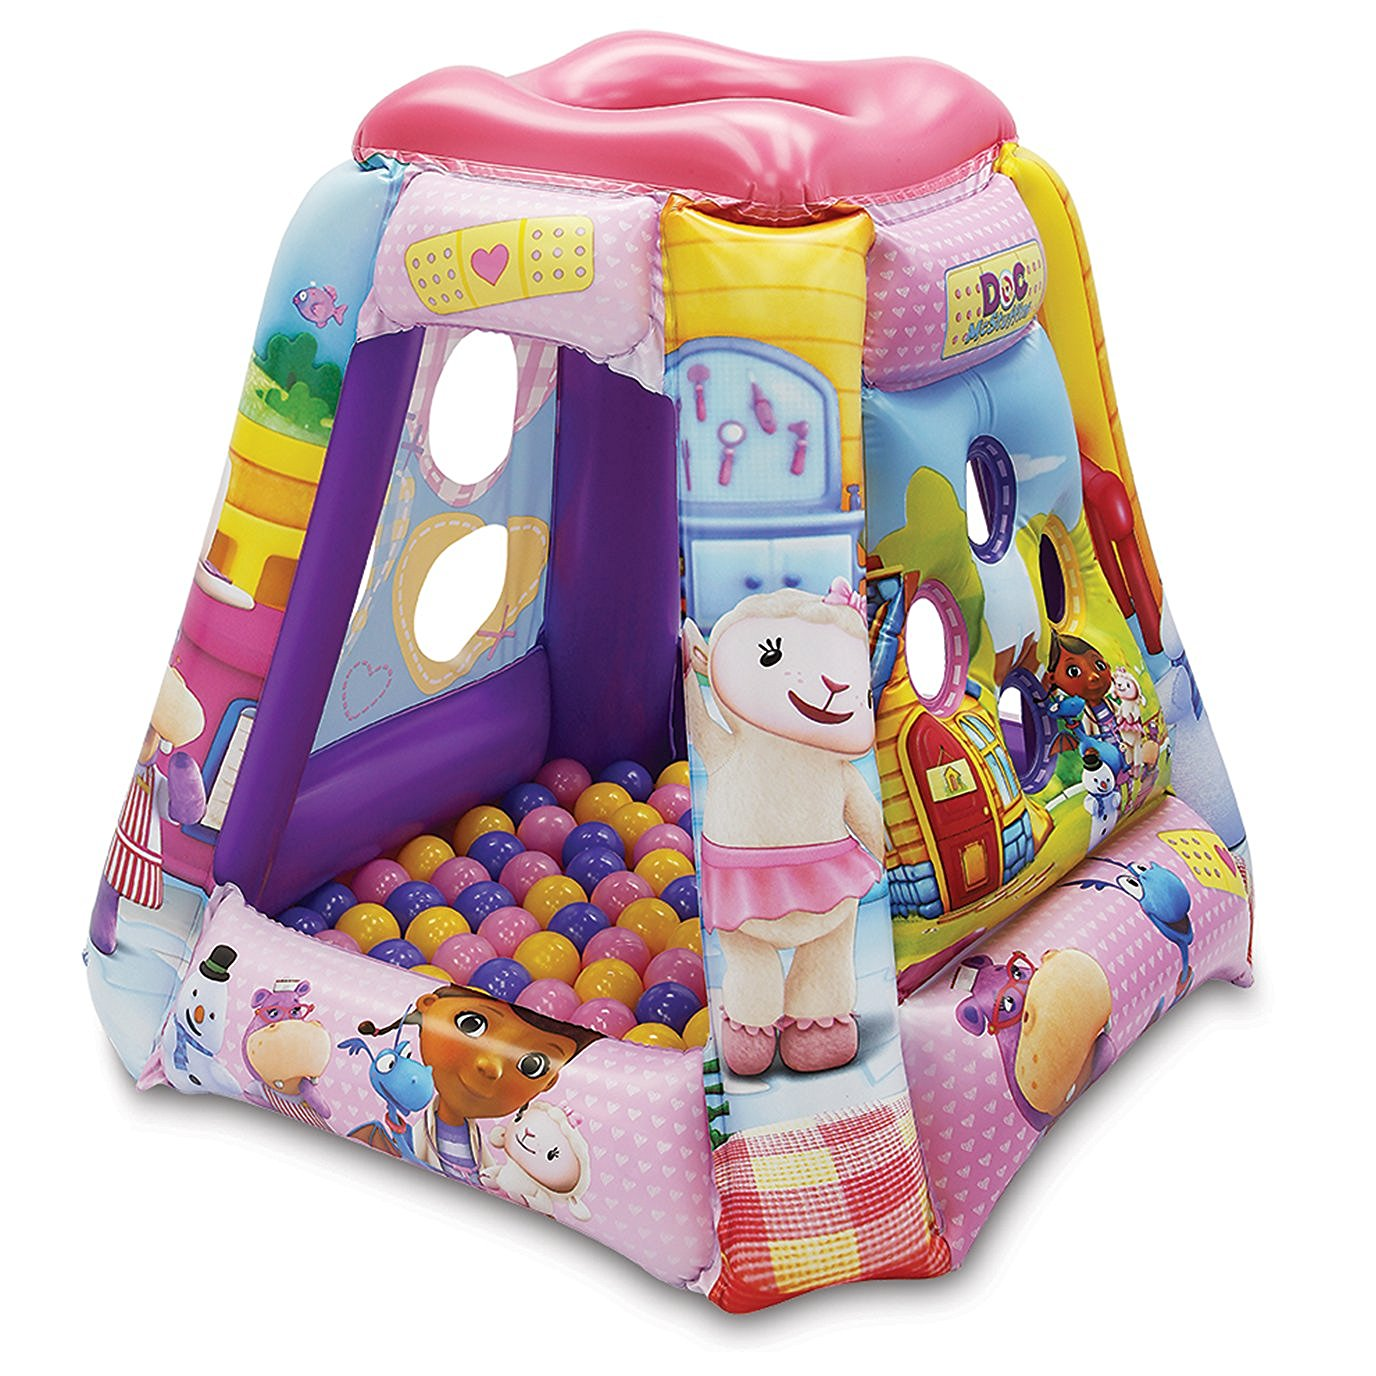 freebies2deals-ballpit